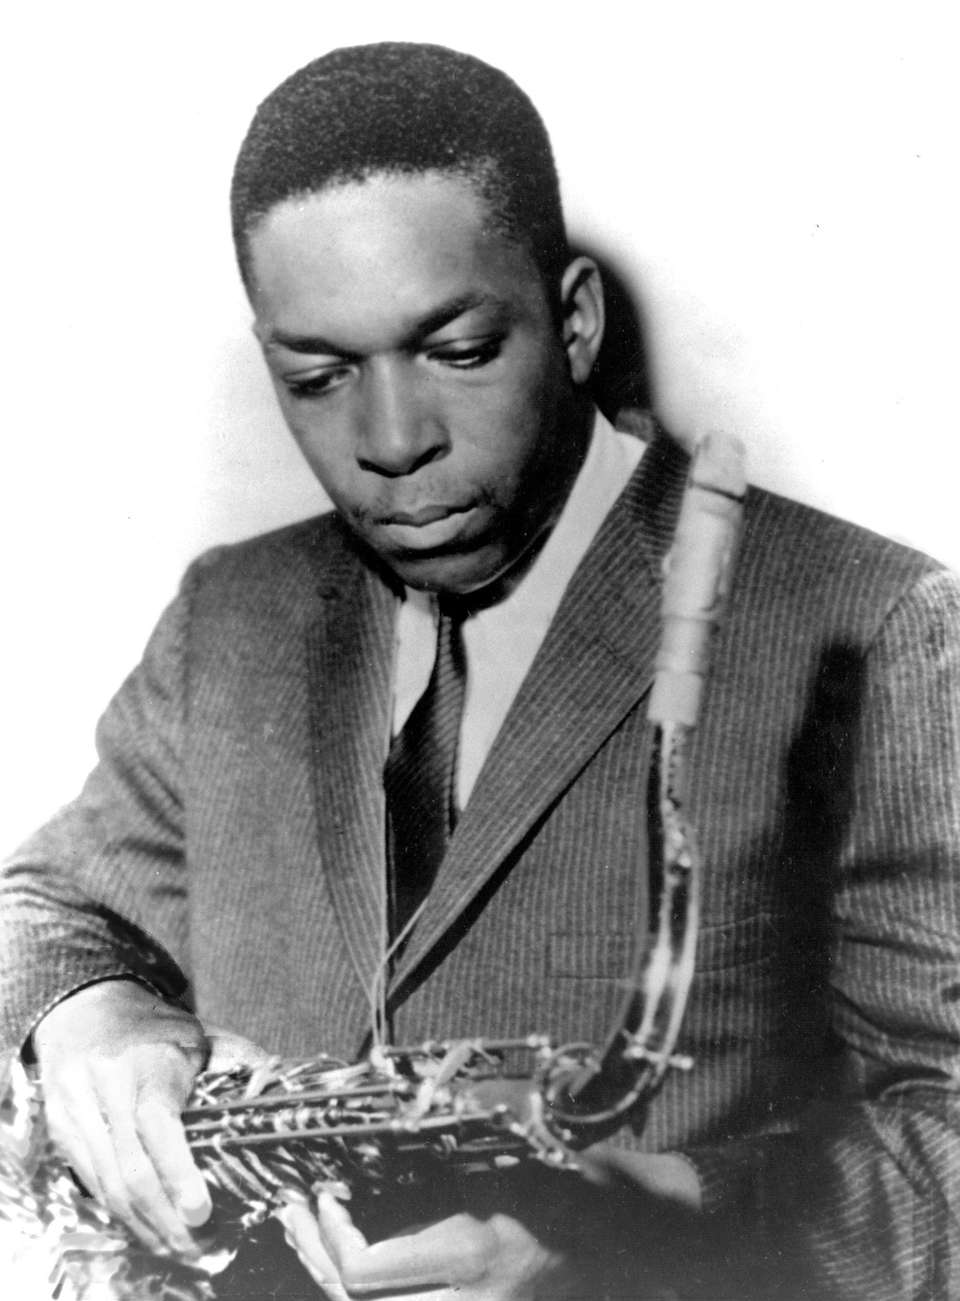 Jazz saxophonist John Coltrane, pictured in this undated